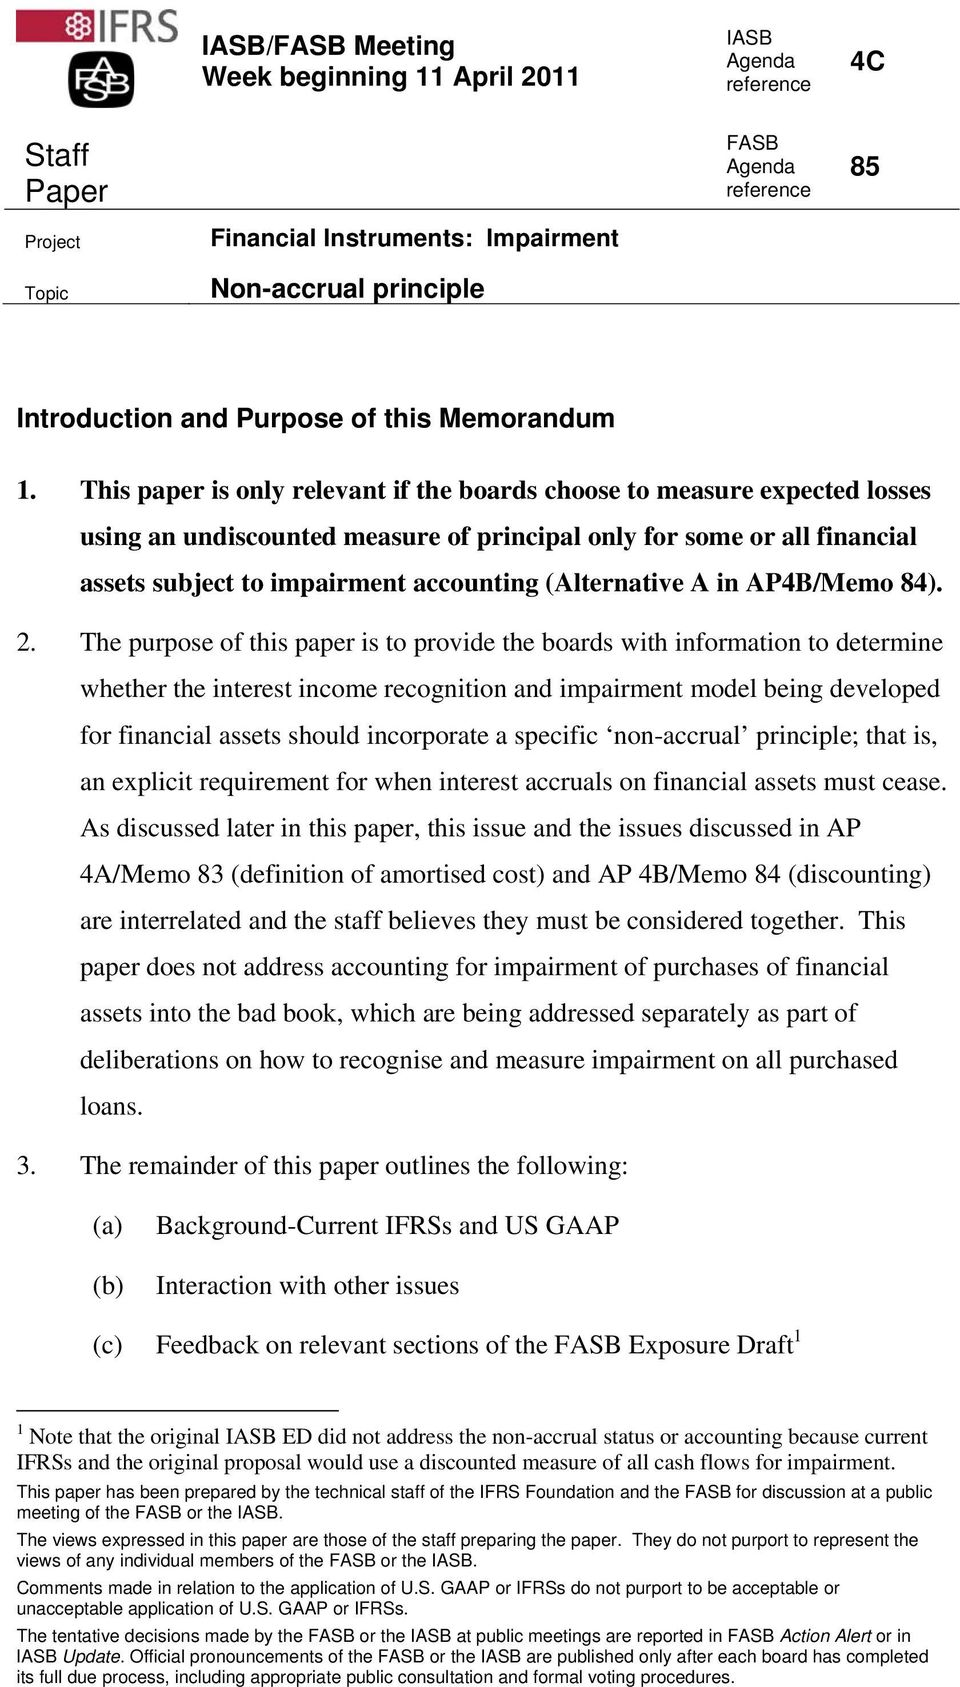 This paper is only relevant if the boards choose to measure expected losses using an undiscounted measure of principal only for some or all financial assets subject to impairment accounting